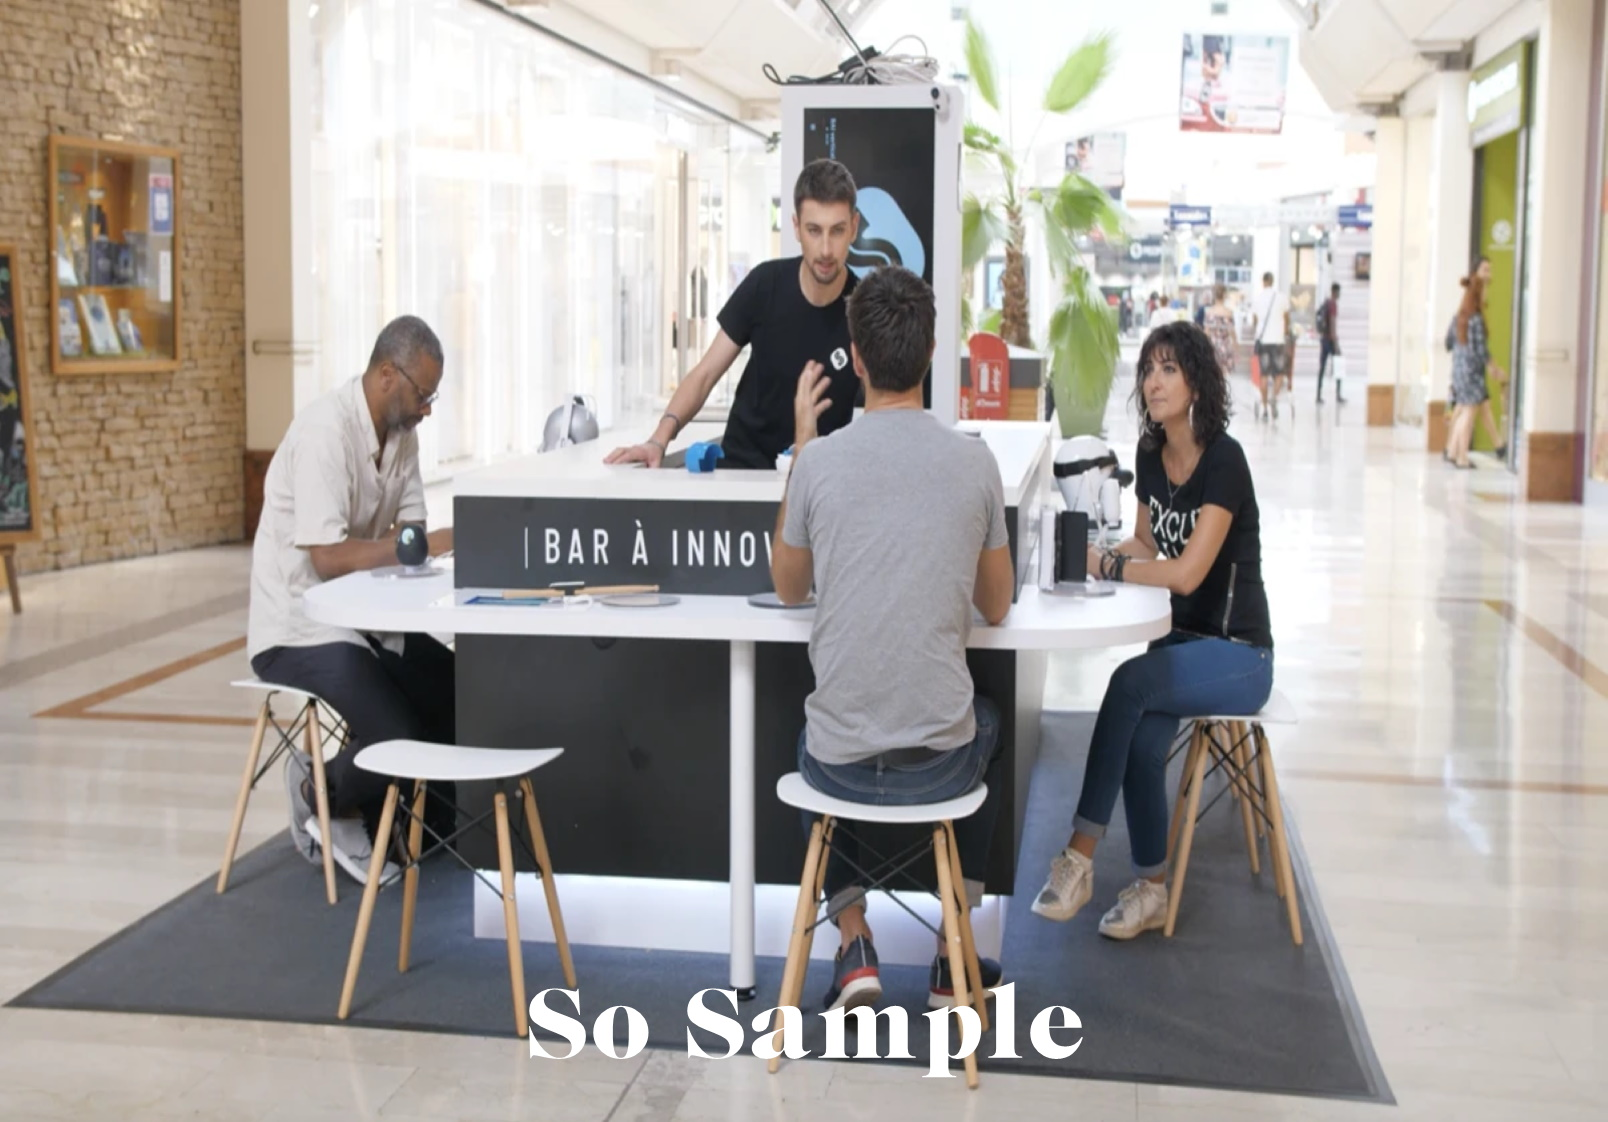 so-sample-bar-innovations